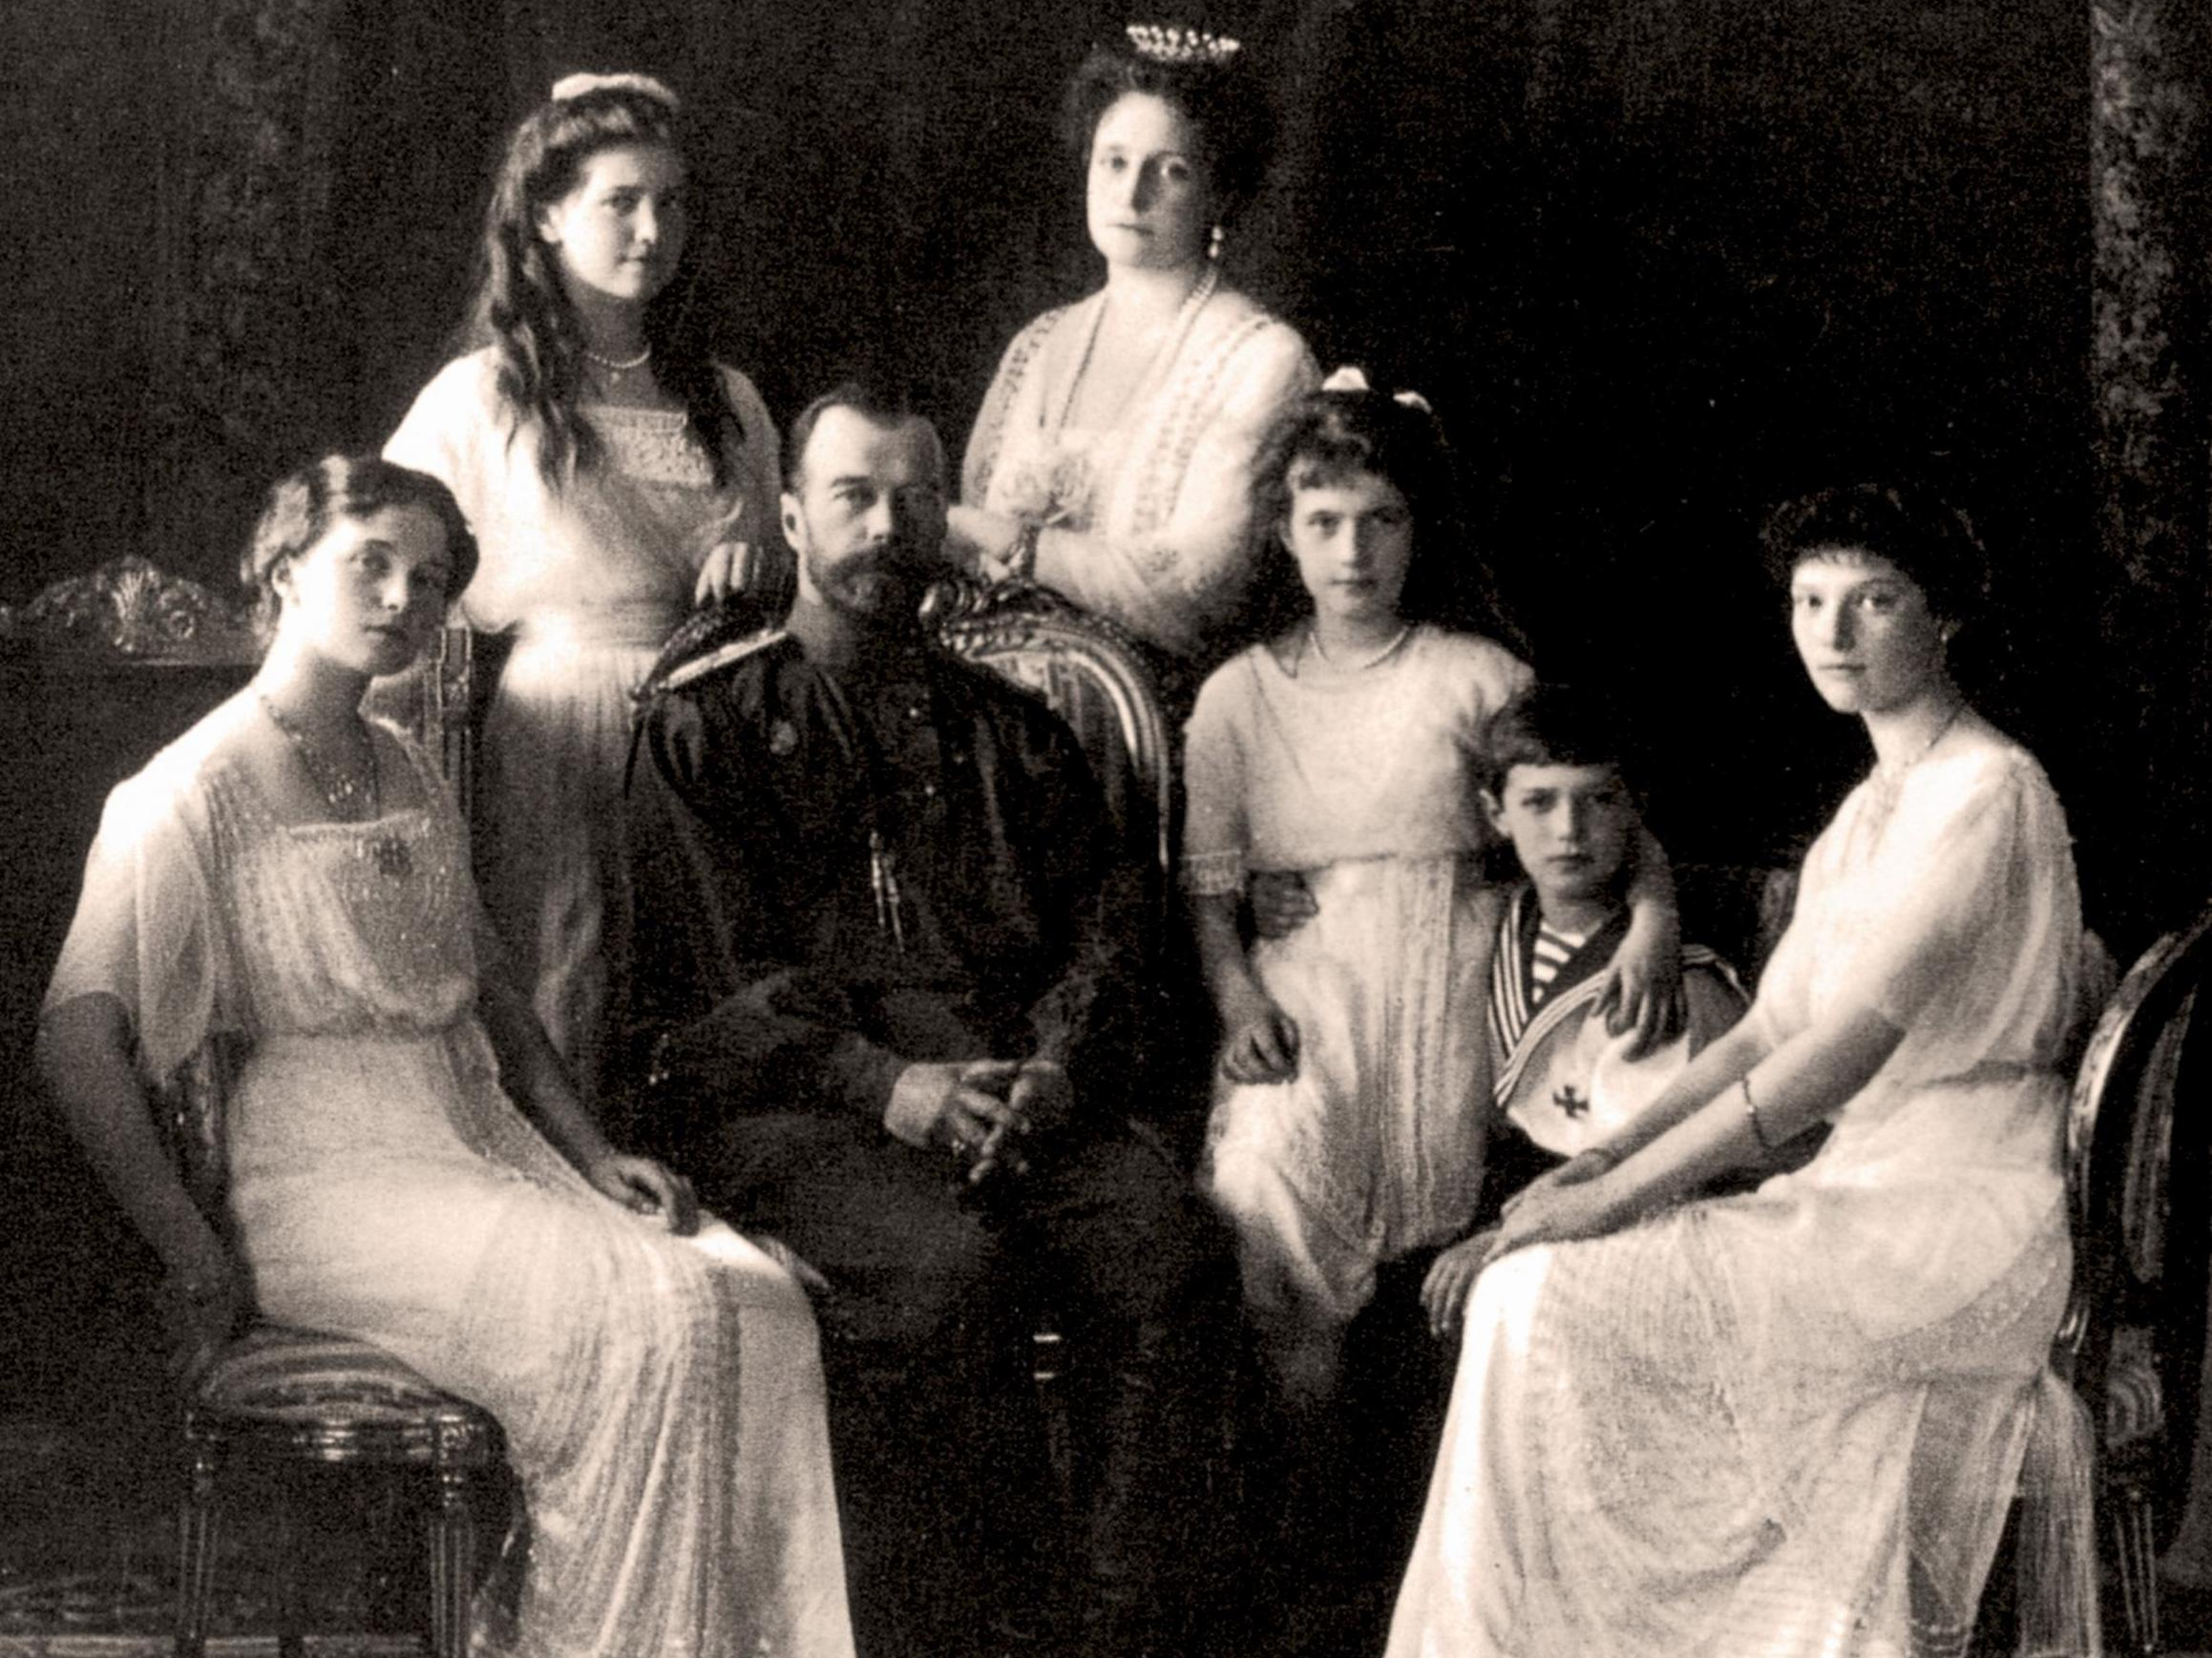 Tsar Nicholas II's murder 100 years on: The terrible fate of Russia's imperial family